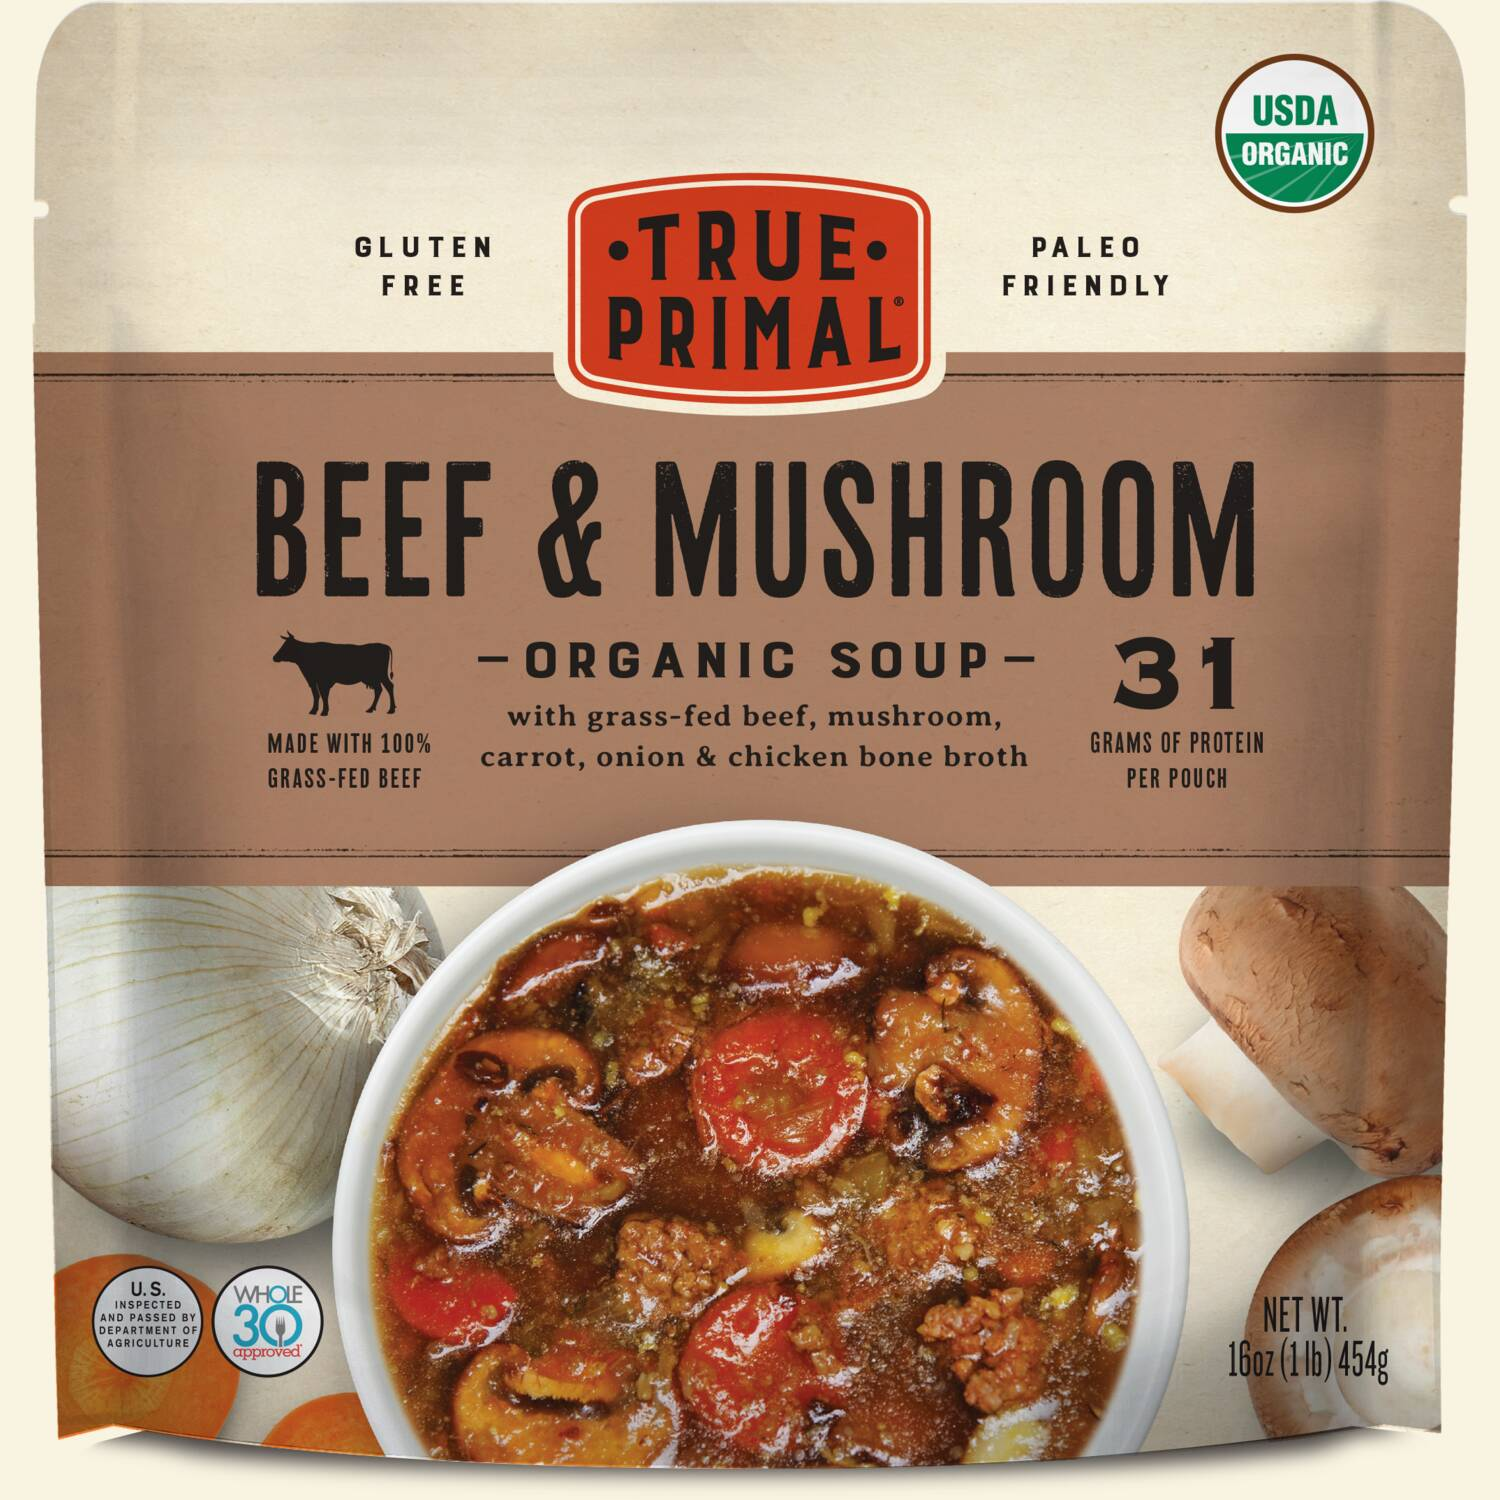 True Primal Beef and Mushroom Organic Soup in pouch, front